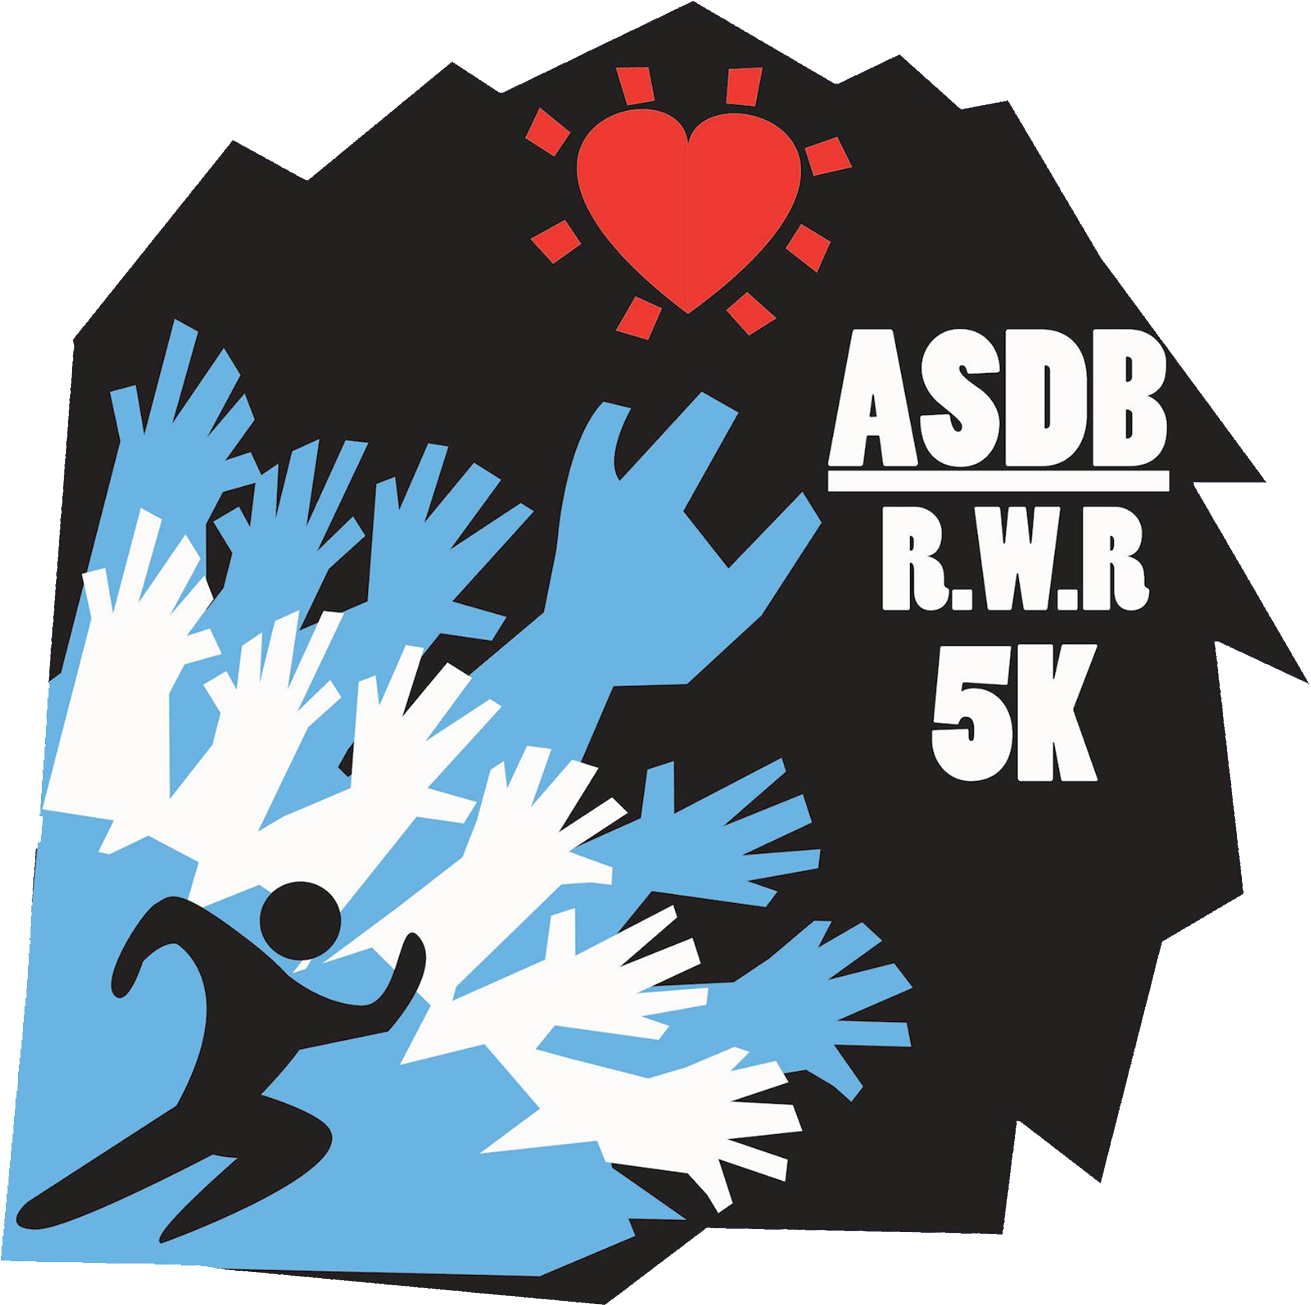 ASDB 5k graphic featuring abstract graphics of figures running and the text ASDB 5K